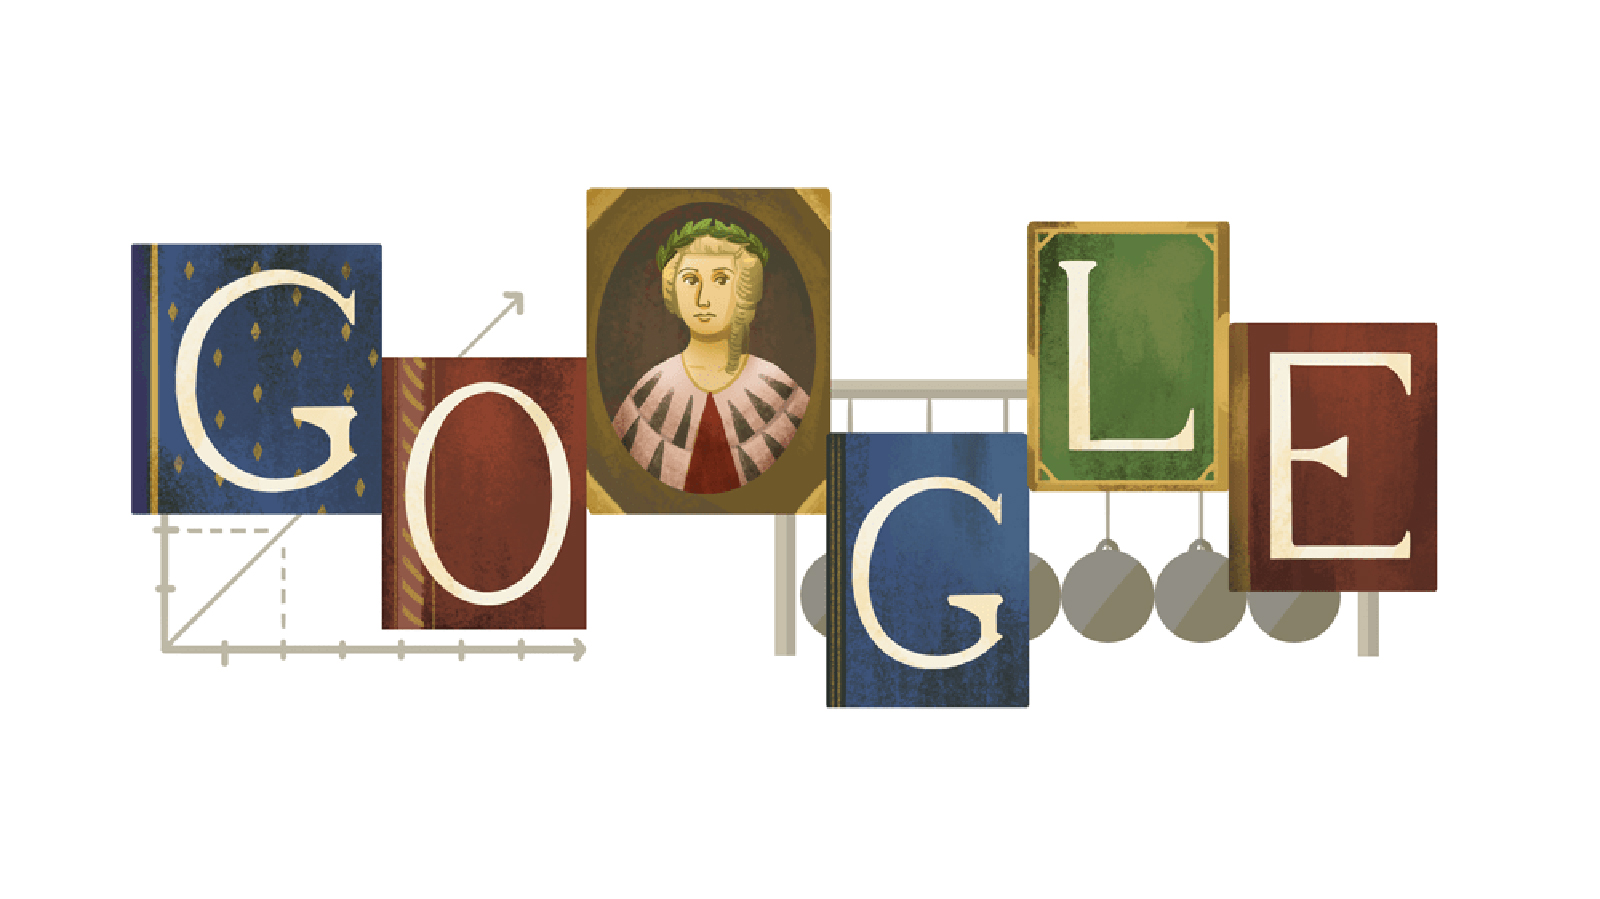 Google Doodle celebrates Laura Bassi, one of the first European women to earn a PhD